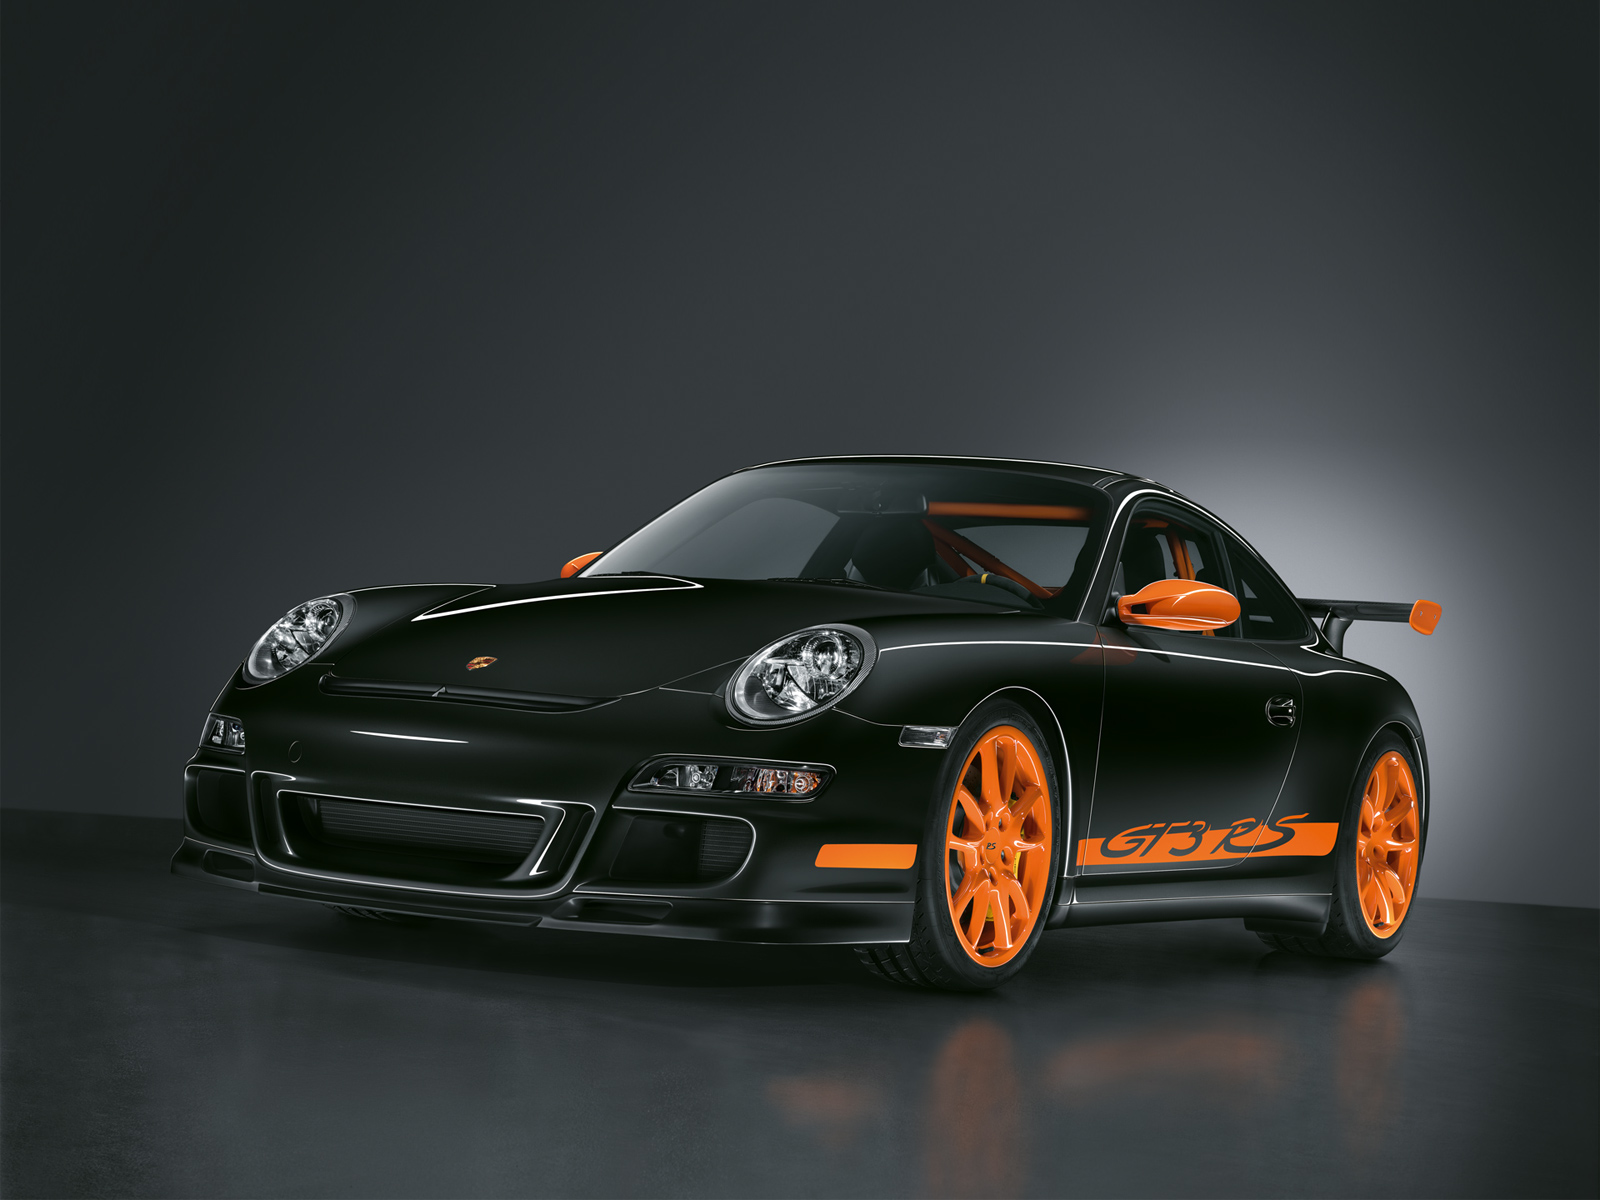 free cars hd wallpapers porsche gt3 rs tuning hd wallpapers. Black Bedroom Furniture Sets. Home Design Ideas